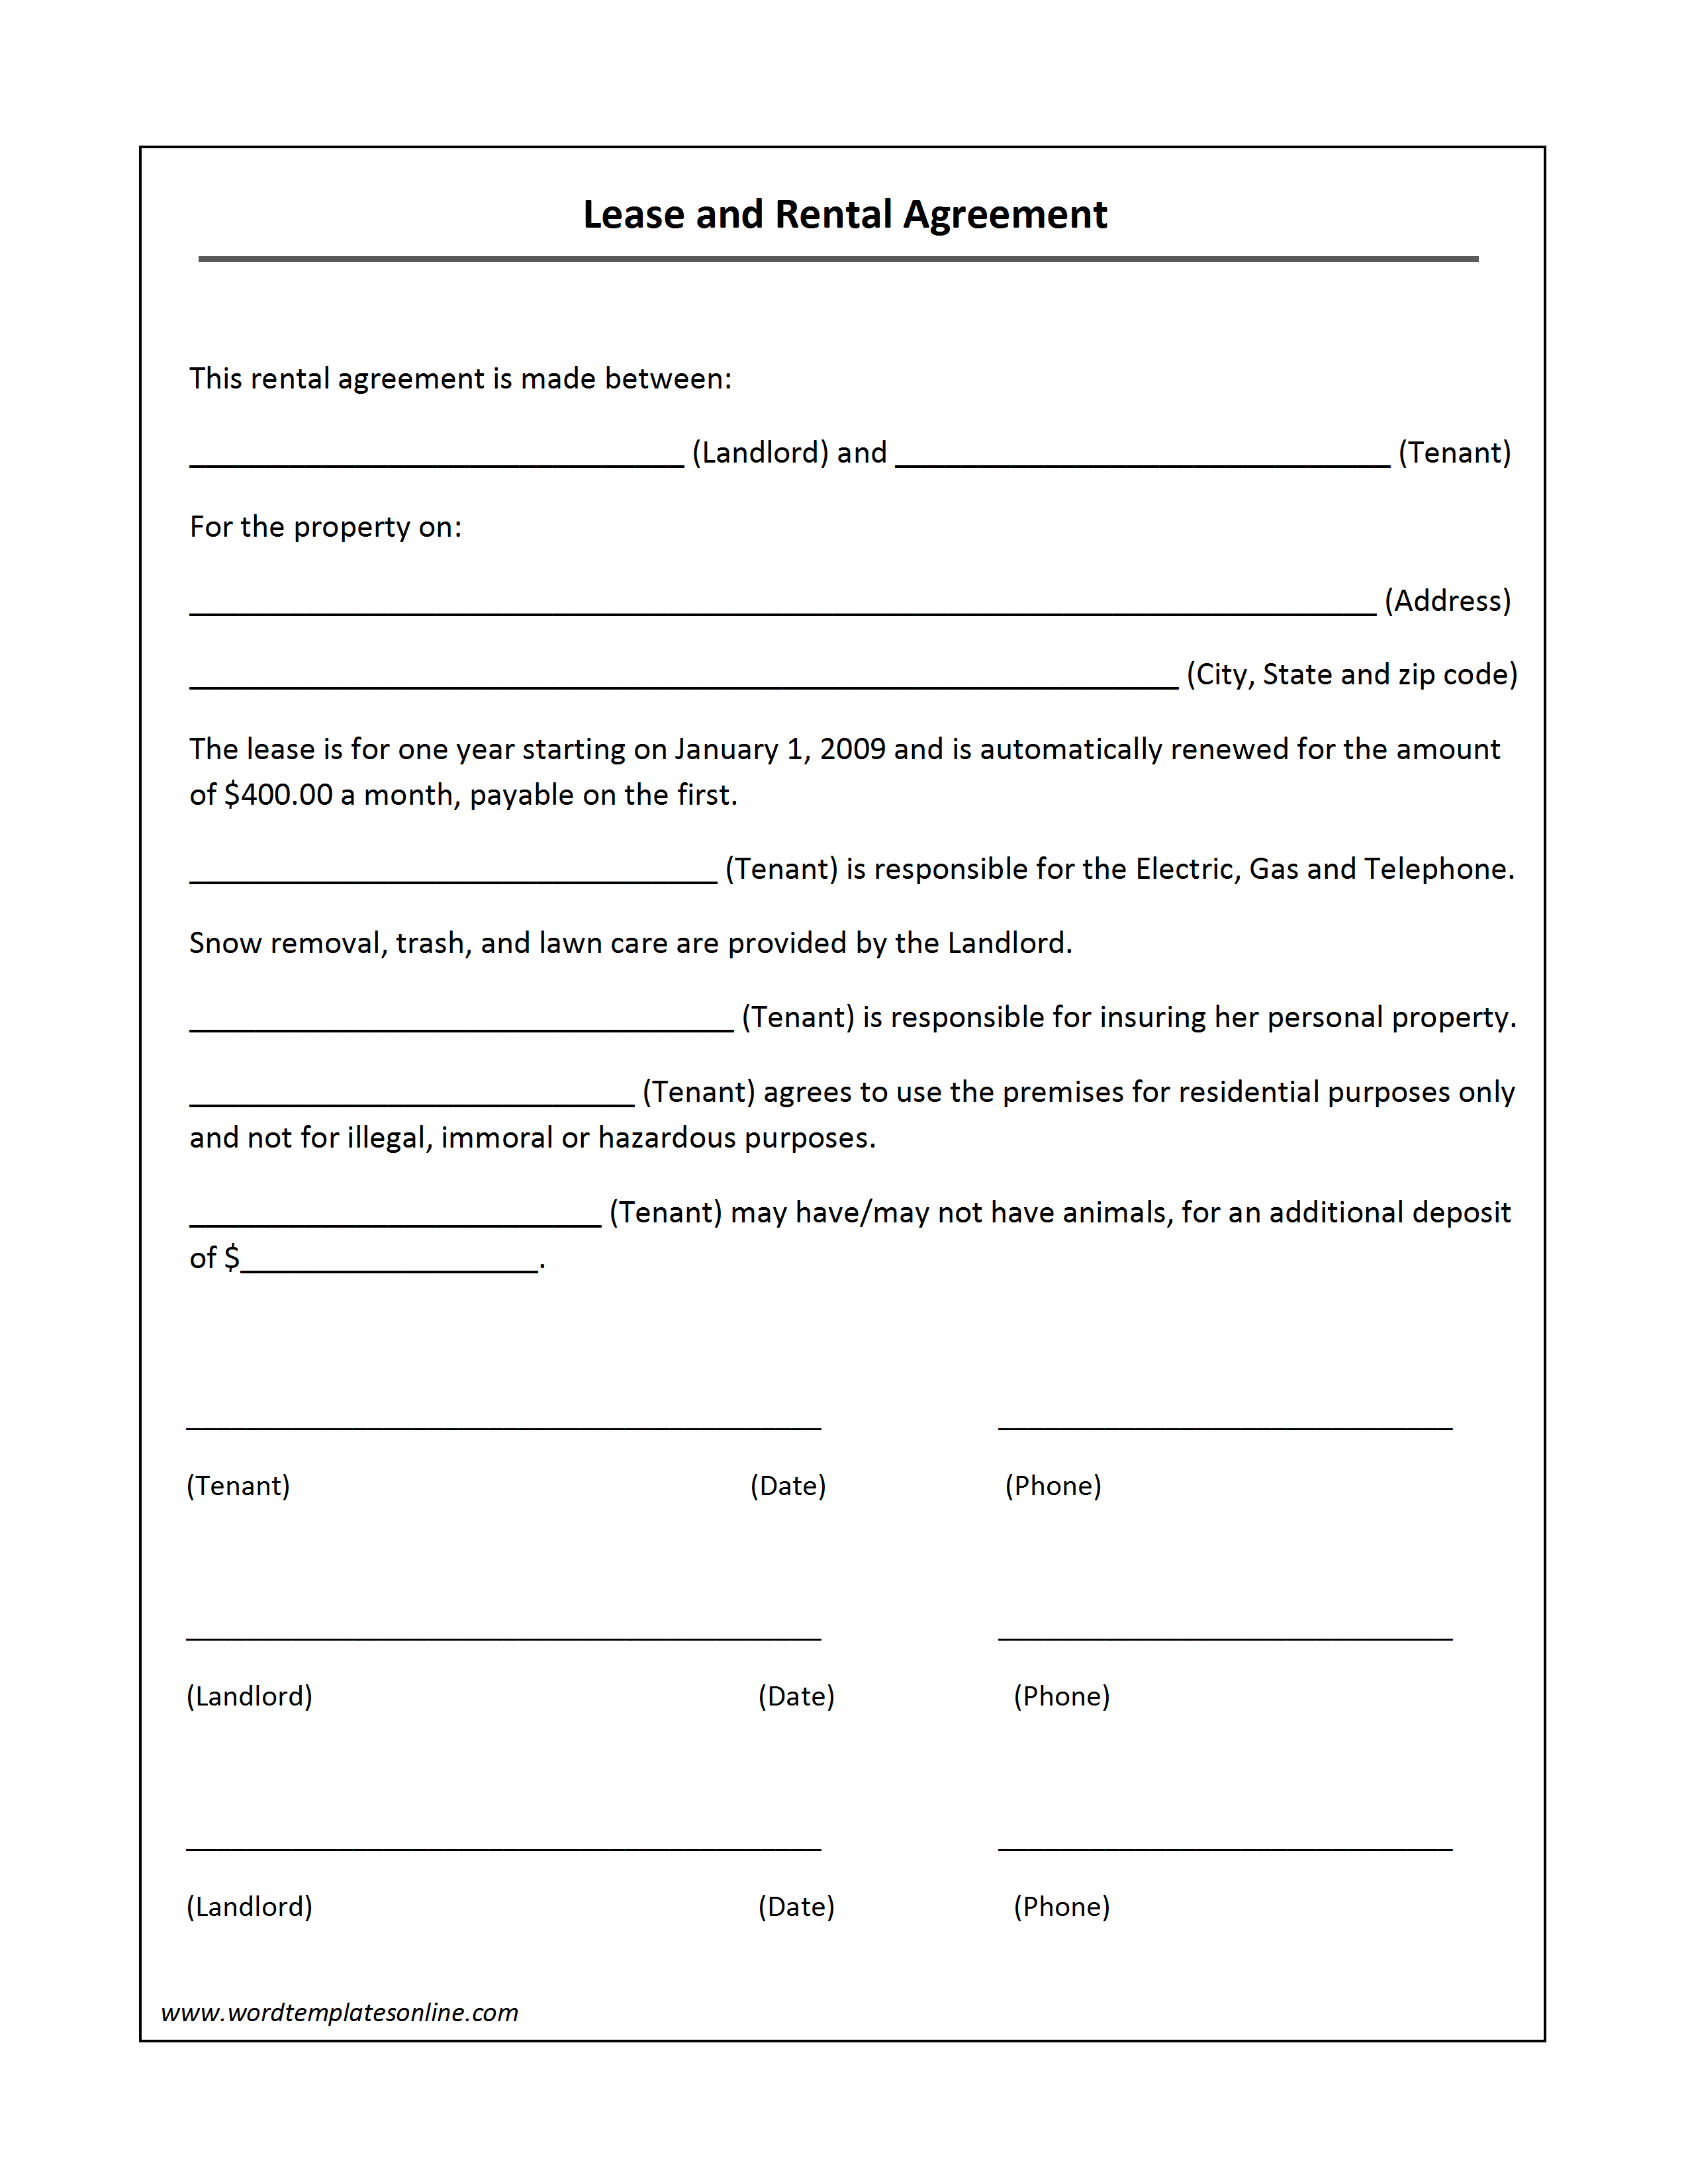 Doc736952 Printable Rental Lease Agreement Printable Sample – Free Printable Rental Lease Agreement